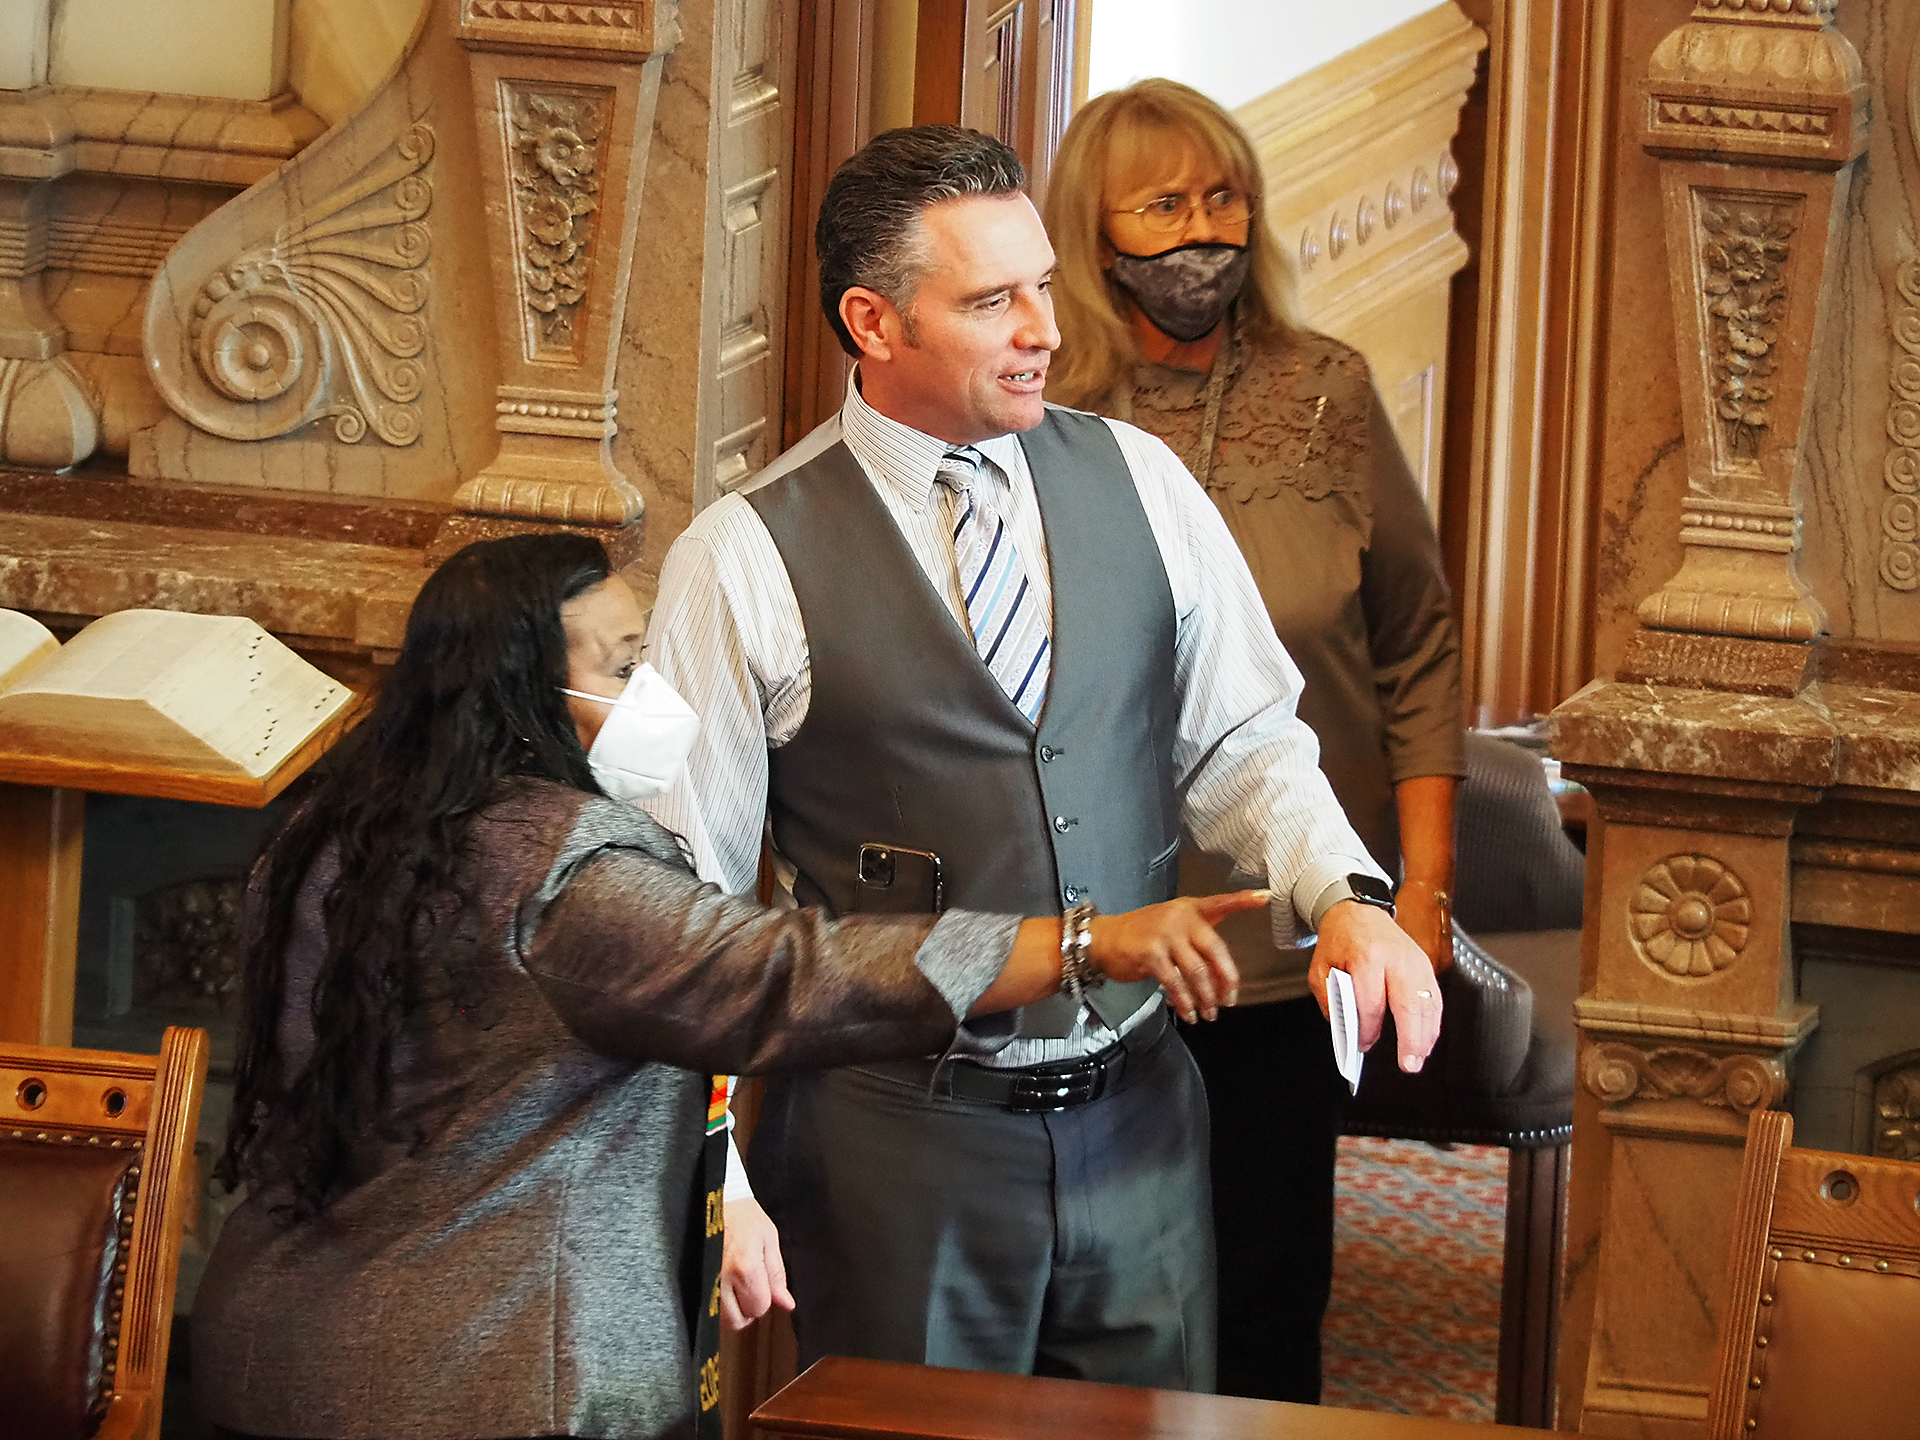 One Kansan's death helps place politics of masks at Capitol into perspective